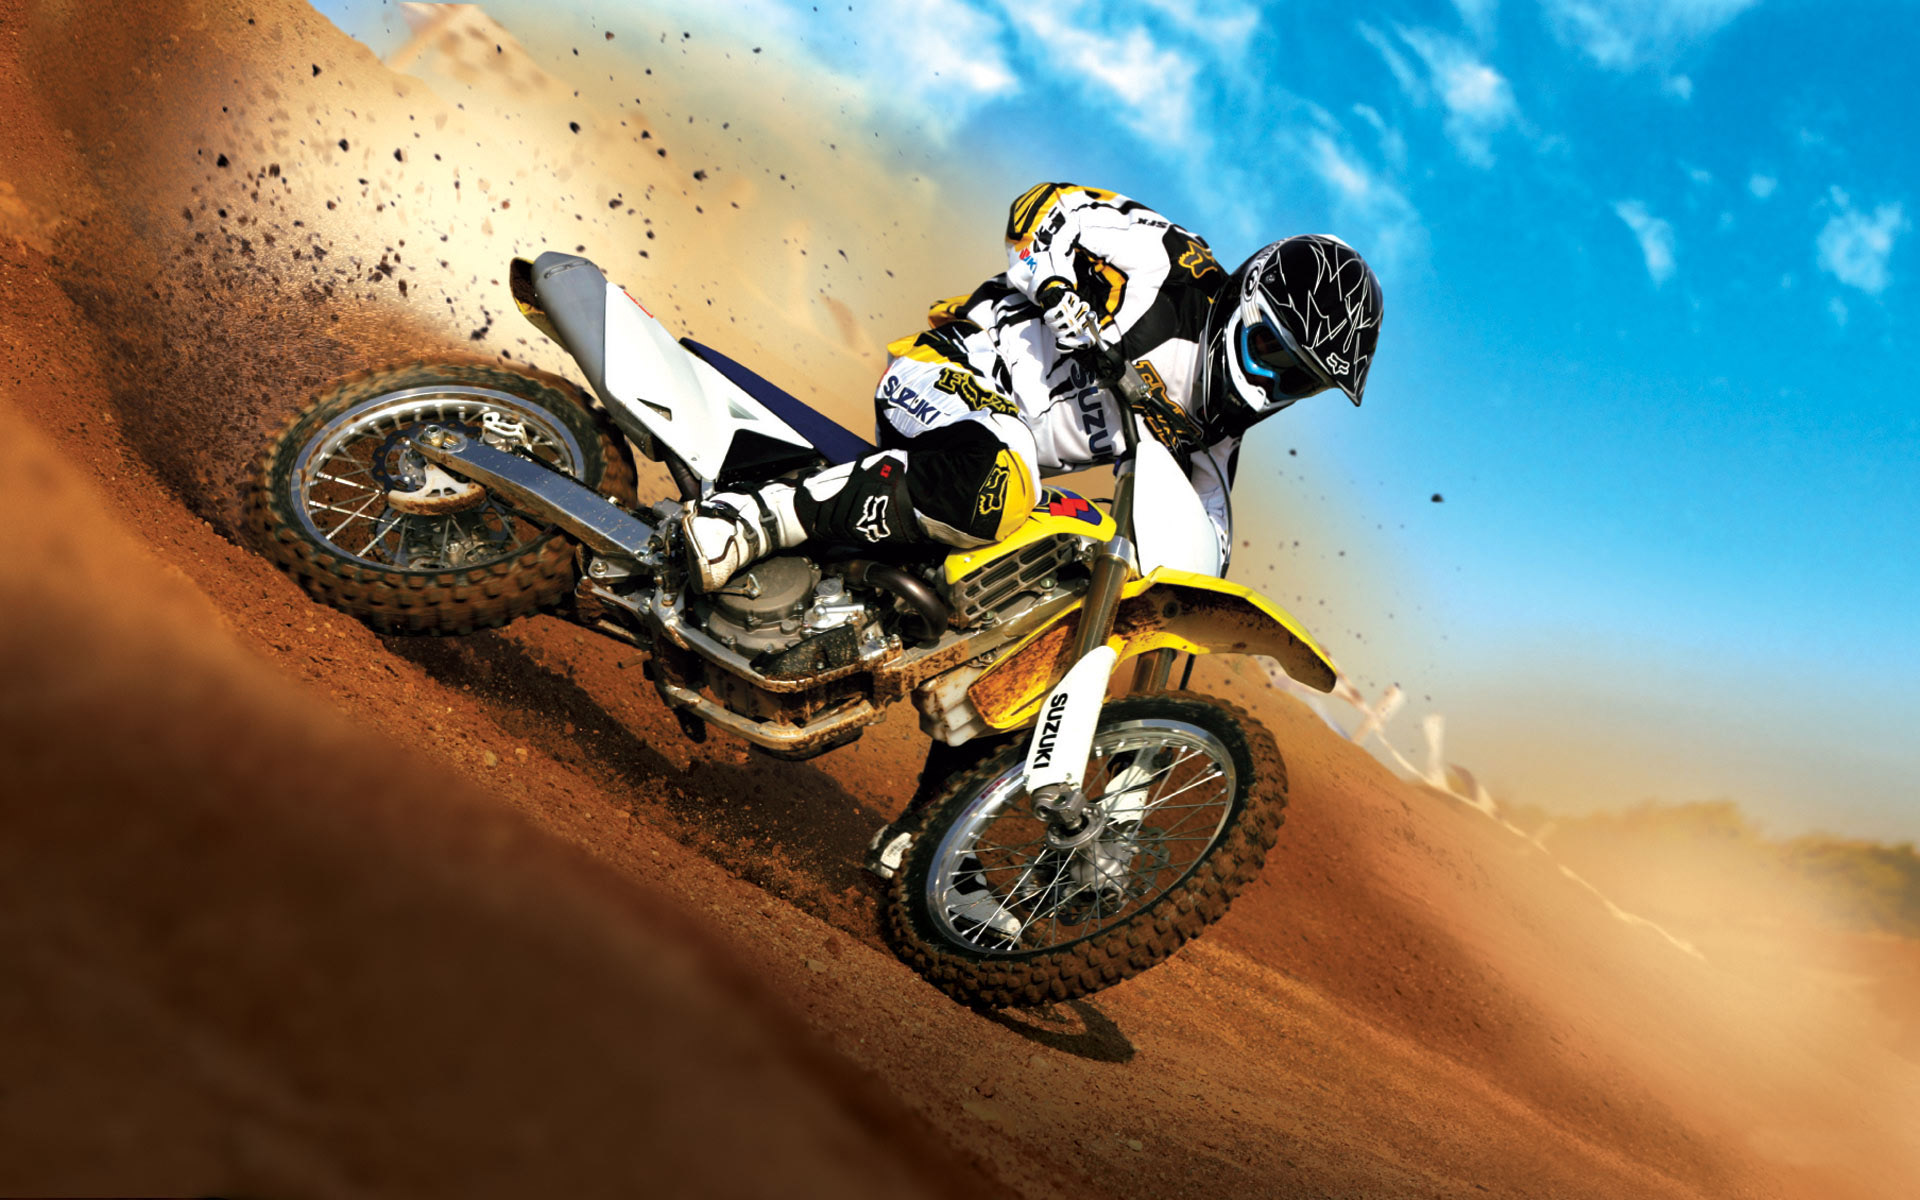 motocross stunt 4232483 1920x1200 all for desktop